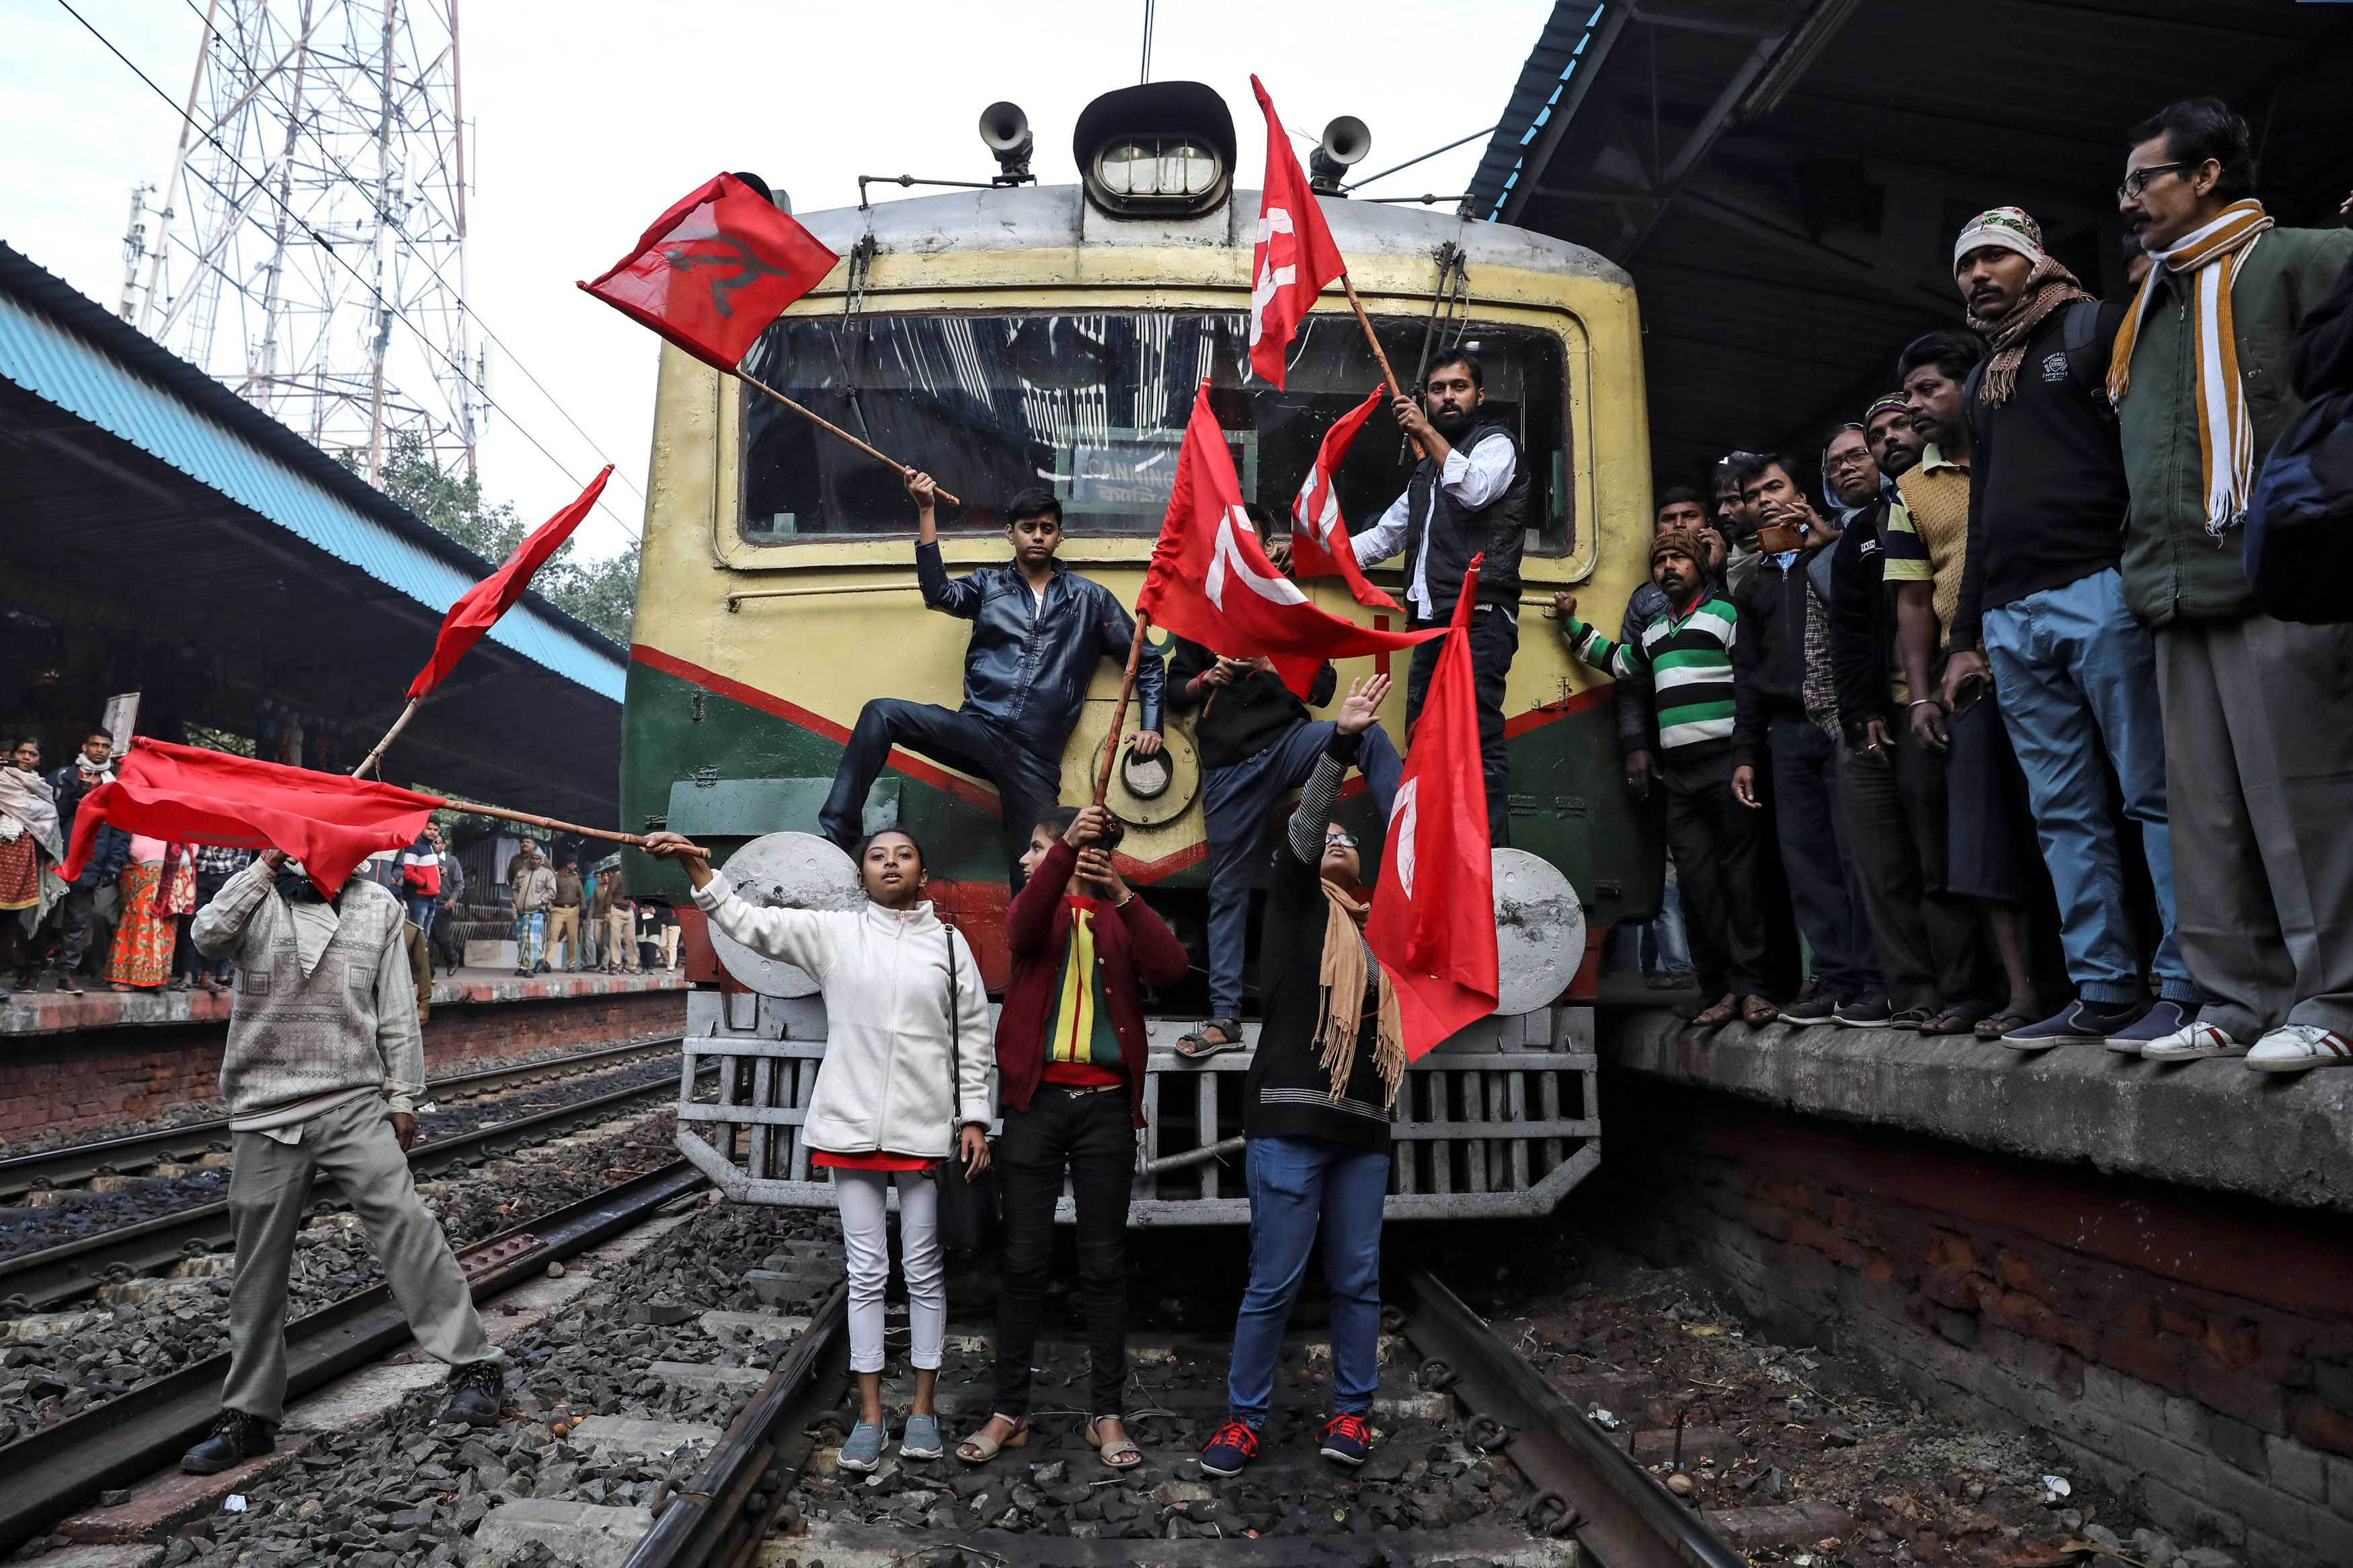 8 January 2020: Communist Party of India (Marxist) supporters blocking a passenger train during an anti-government protest rally organised as part of a nationwide strike by various trade unions in Kolkata, India. (Photograph by Reuters/Rupak De Chowdhuri)